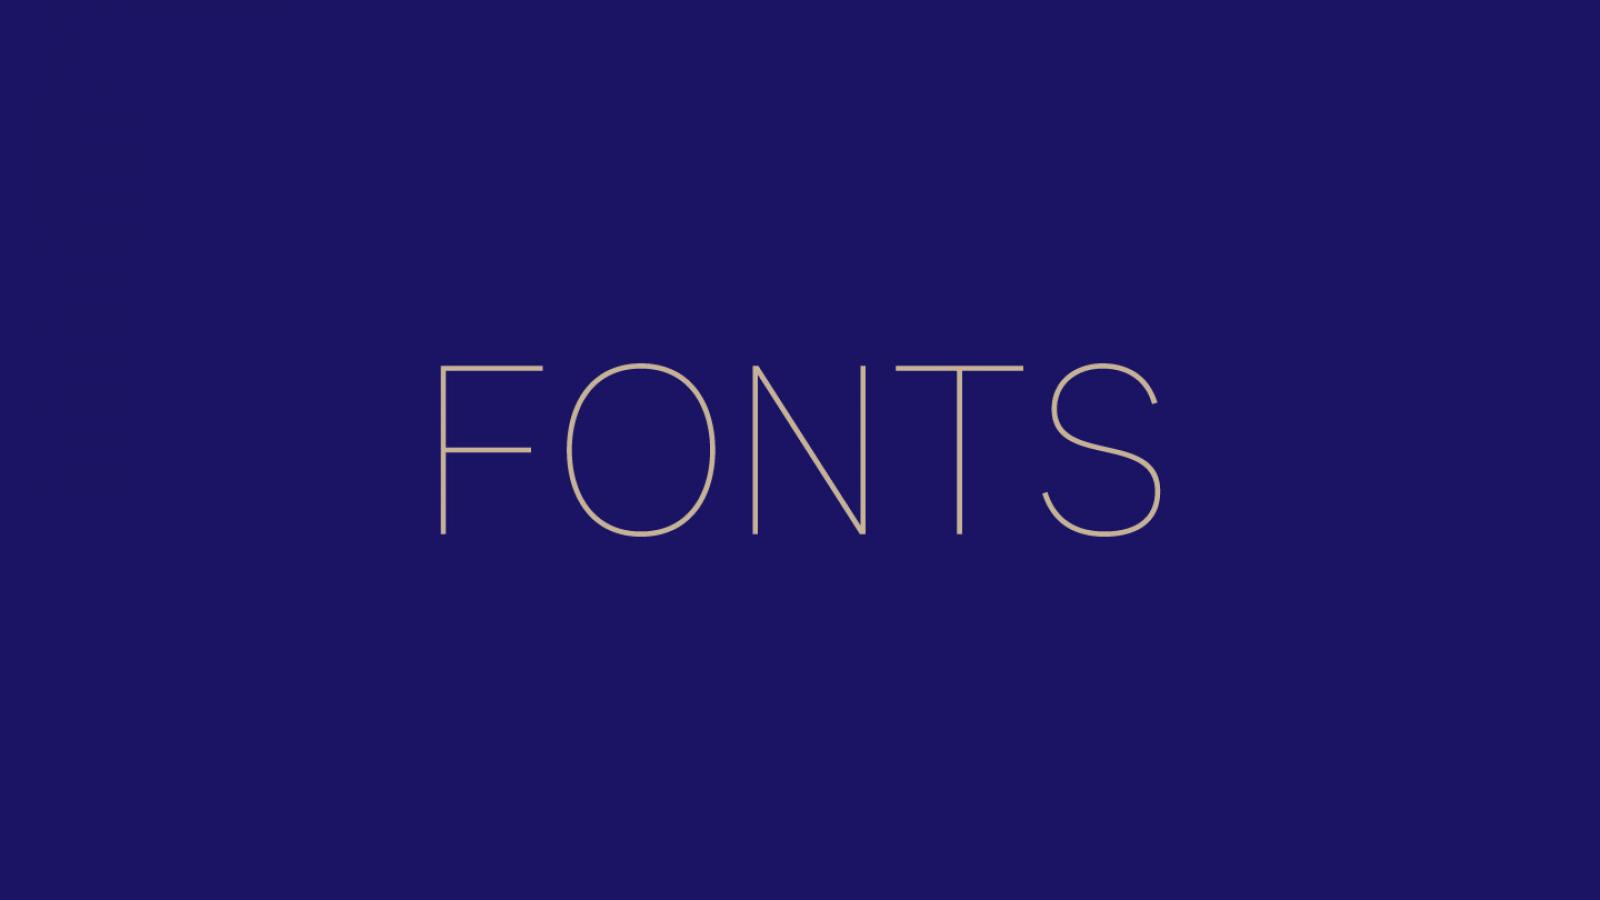 Friday Fresh Free Fonts - Stilu, Genome